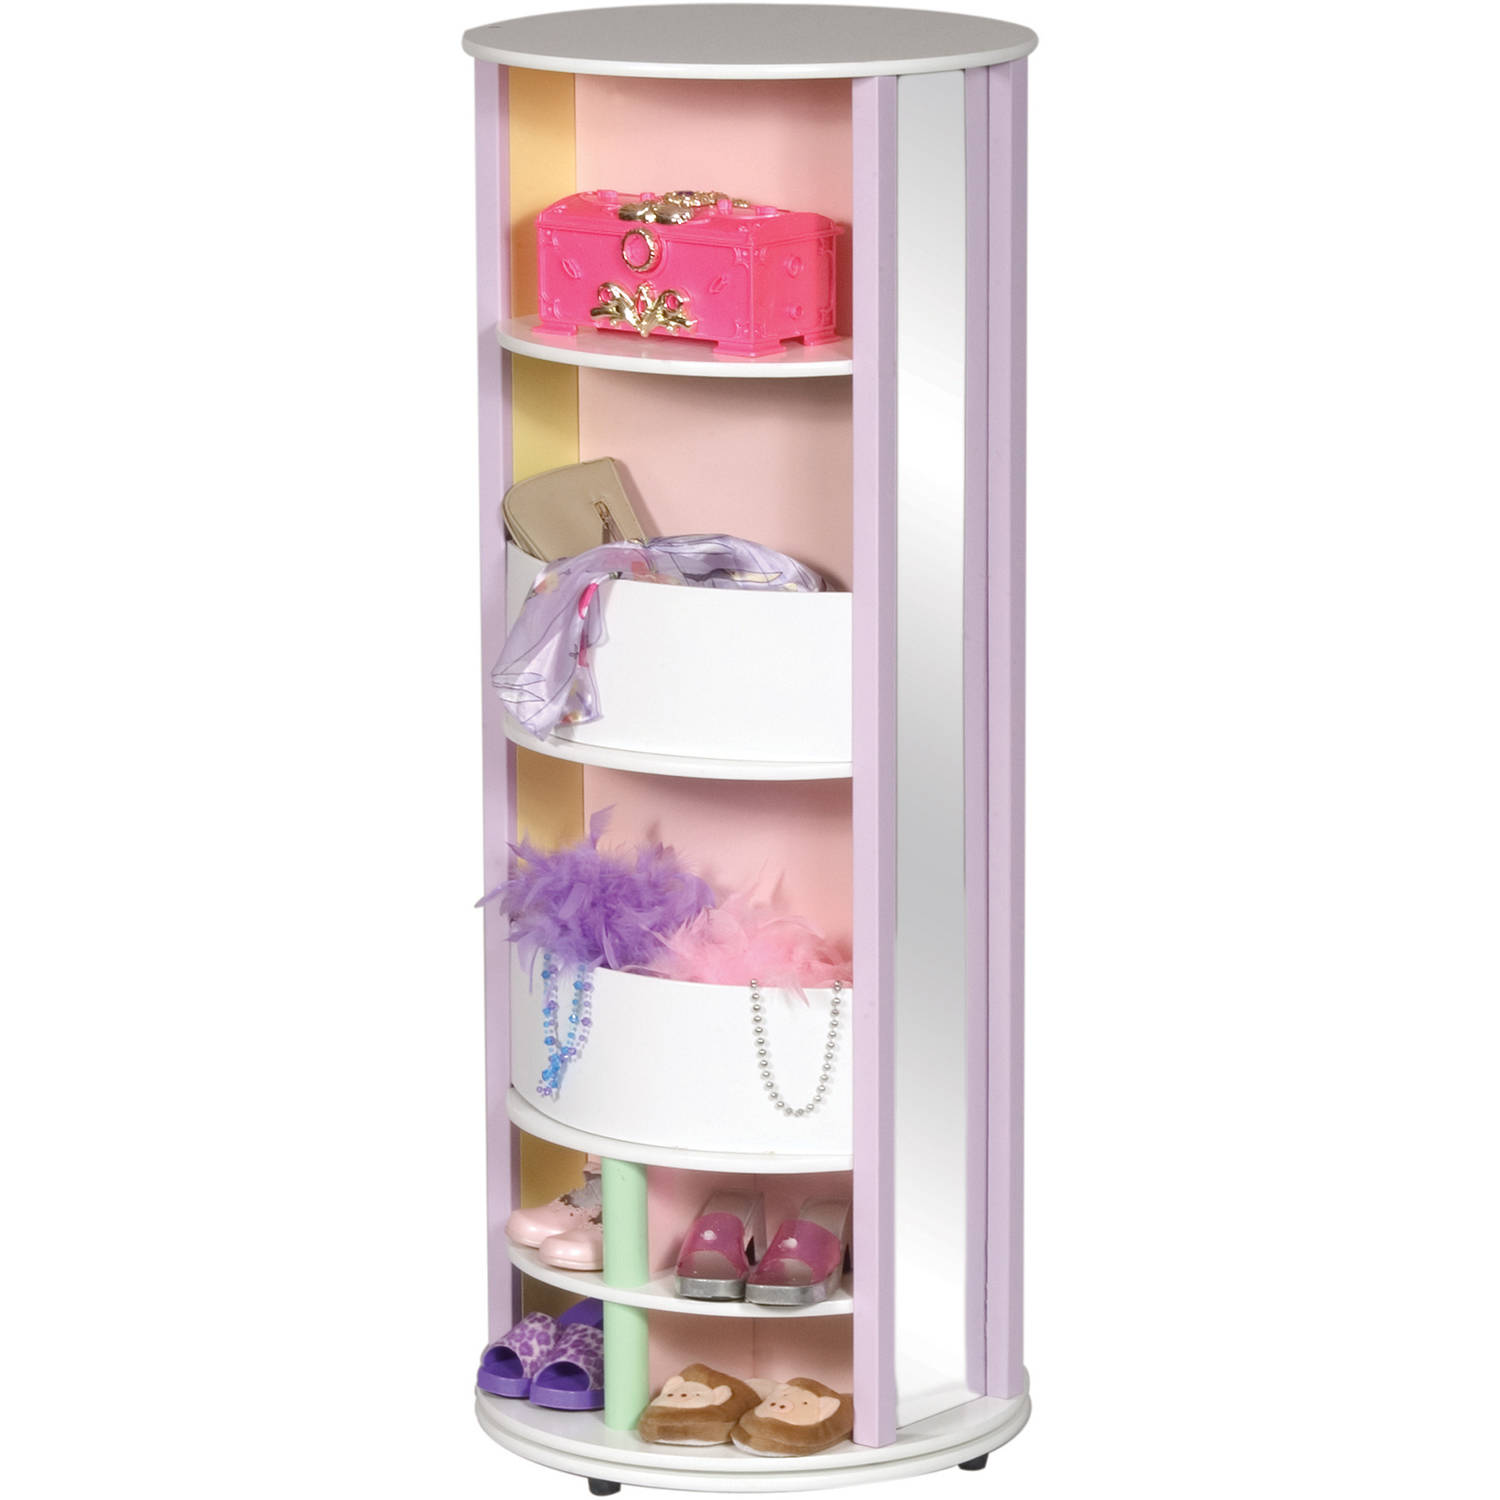 Guidecraft Dress Up Carousel, Pastel